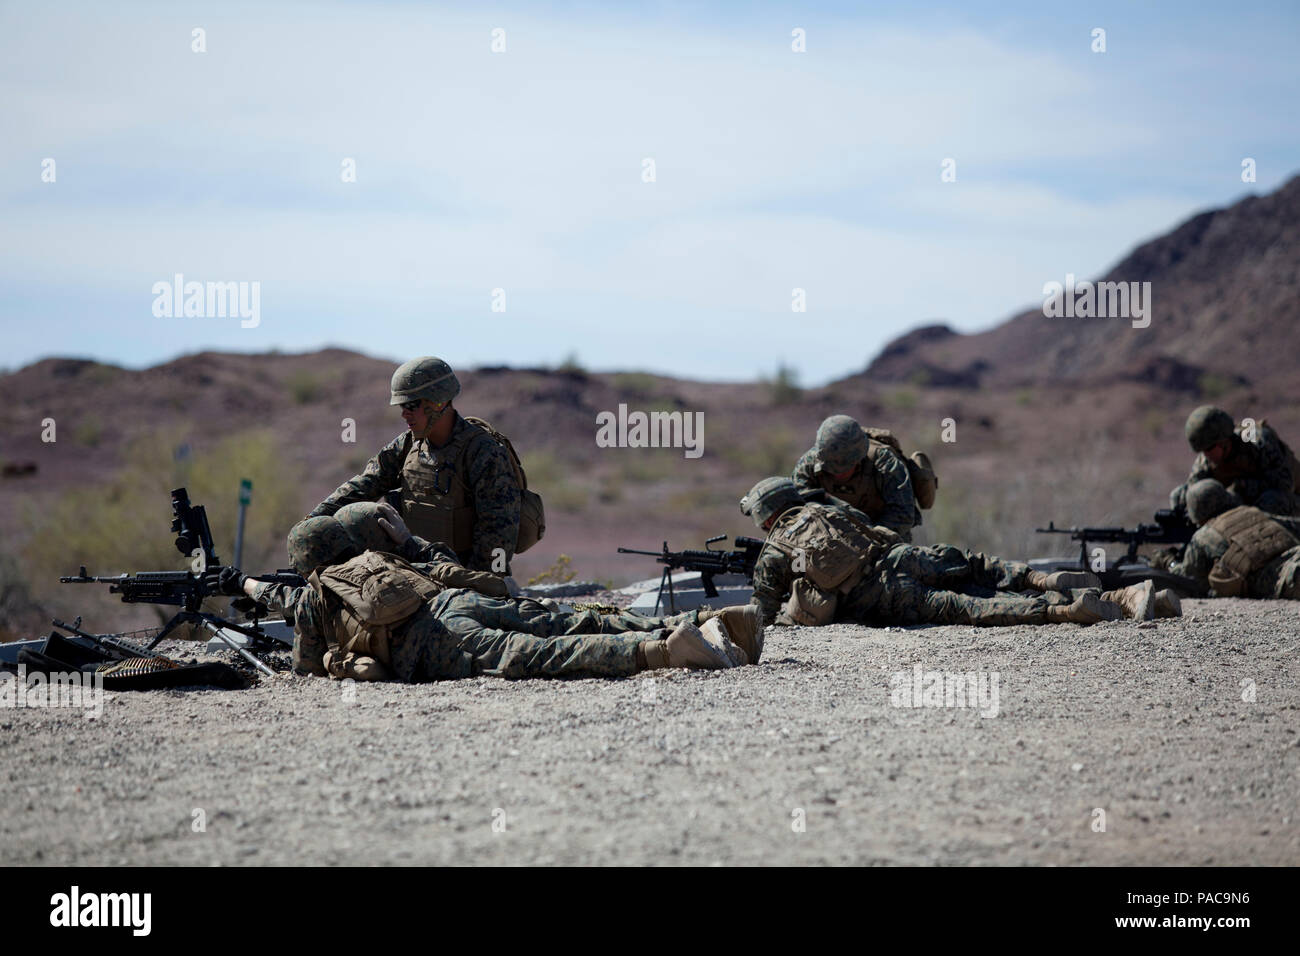 U.S. Marines, Marine Wing Support Squadron 371 (MWSS-371), Marines fire a M240B machine gun at Yuma Proving Grounds, Ariz., on March 10, 2016. MWSS-371 conducts an annual field exercise to prepare Marines for future deployments. (U.S. Marine Corps photo by Lance Cpl. AaronJames B. Vinculado/ Released) Stock Photo